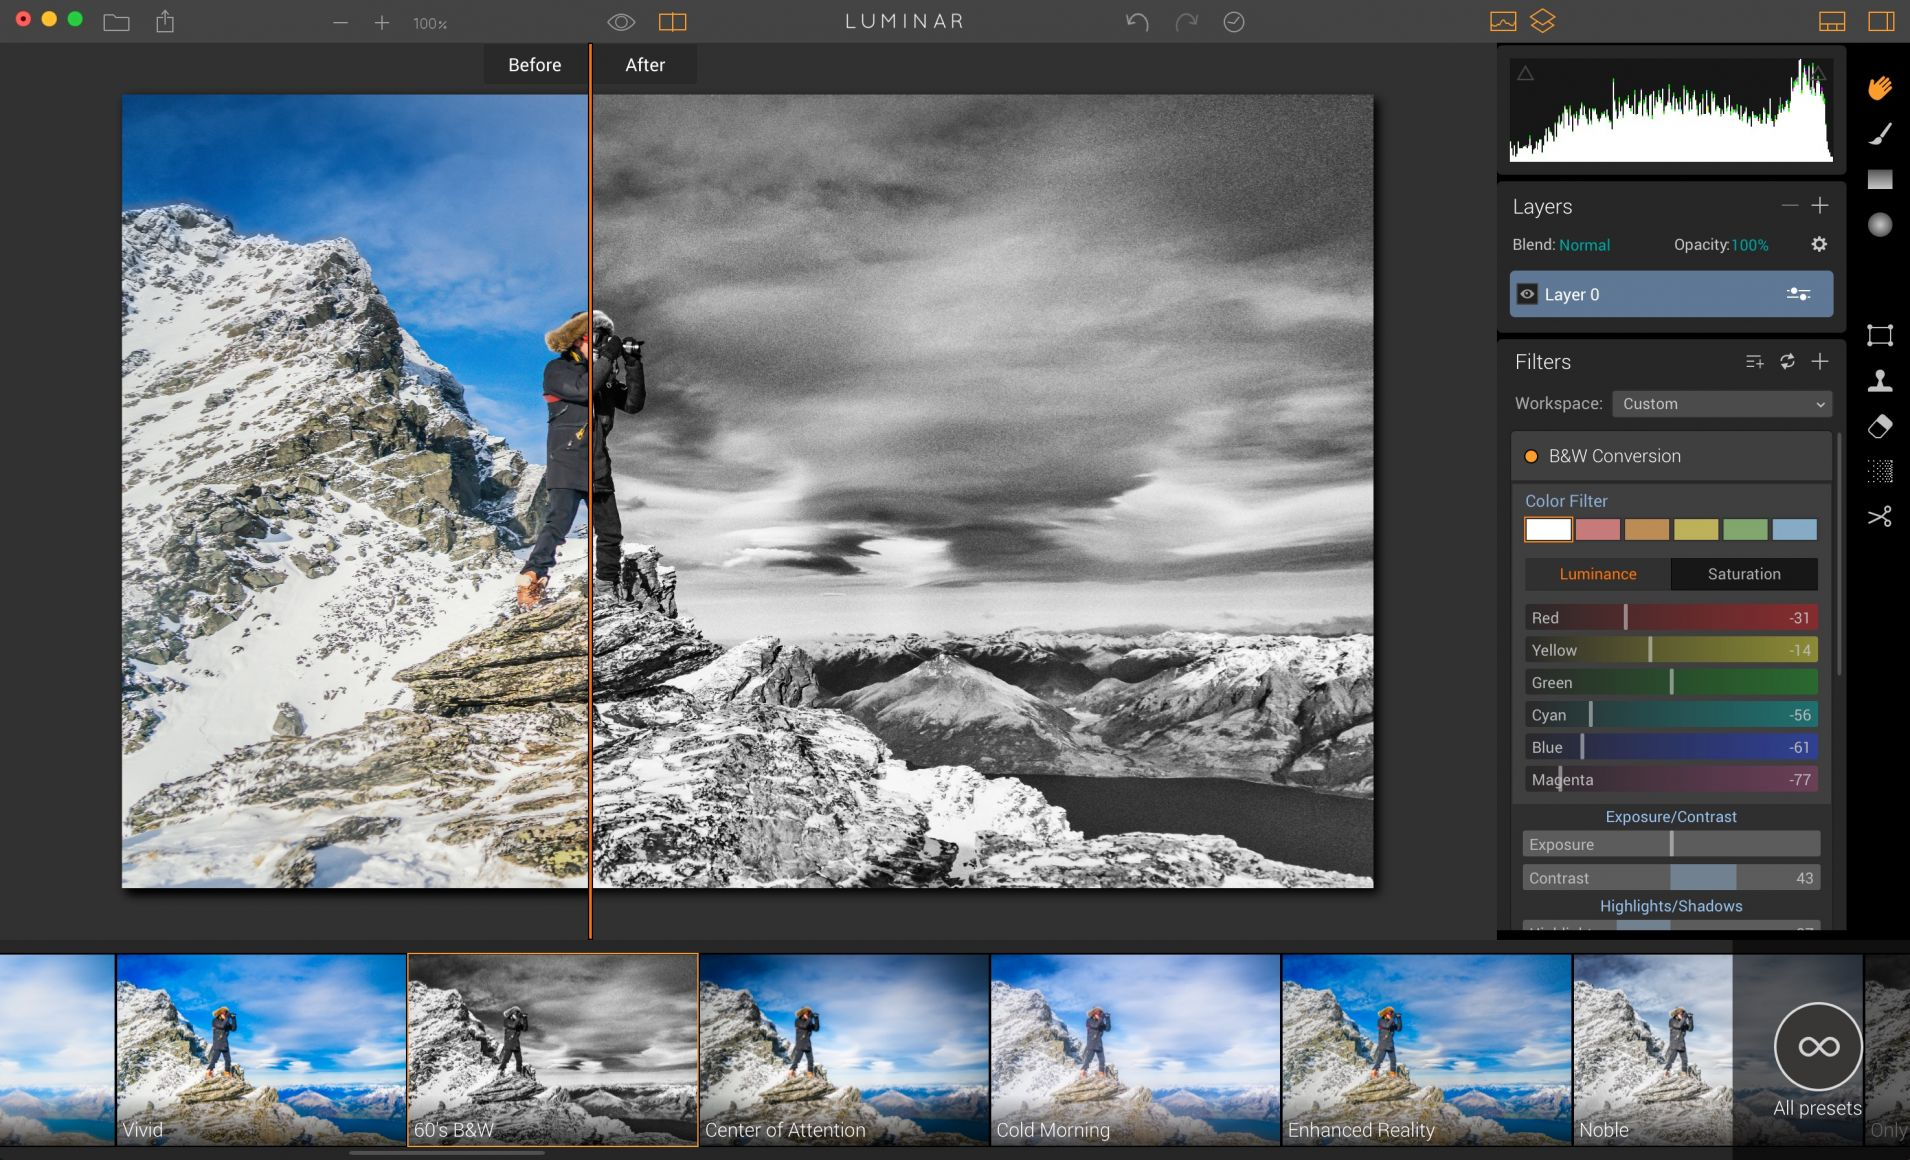 Whats in Luminar for Aurora HDR users? Image2